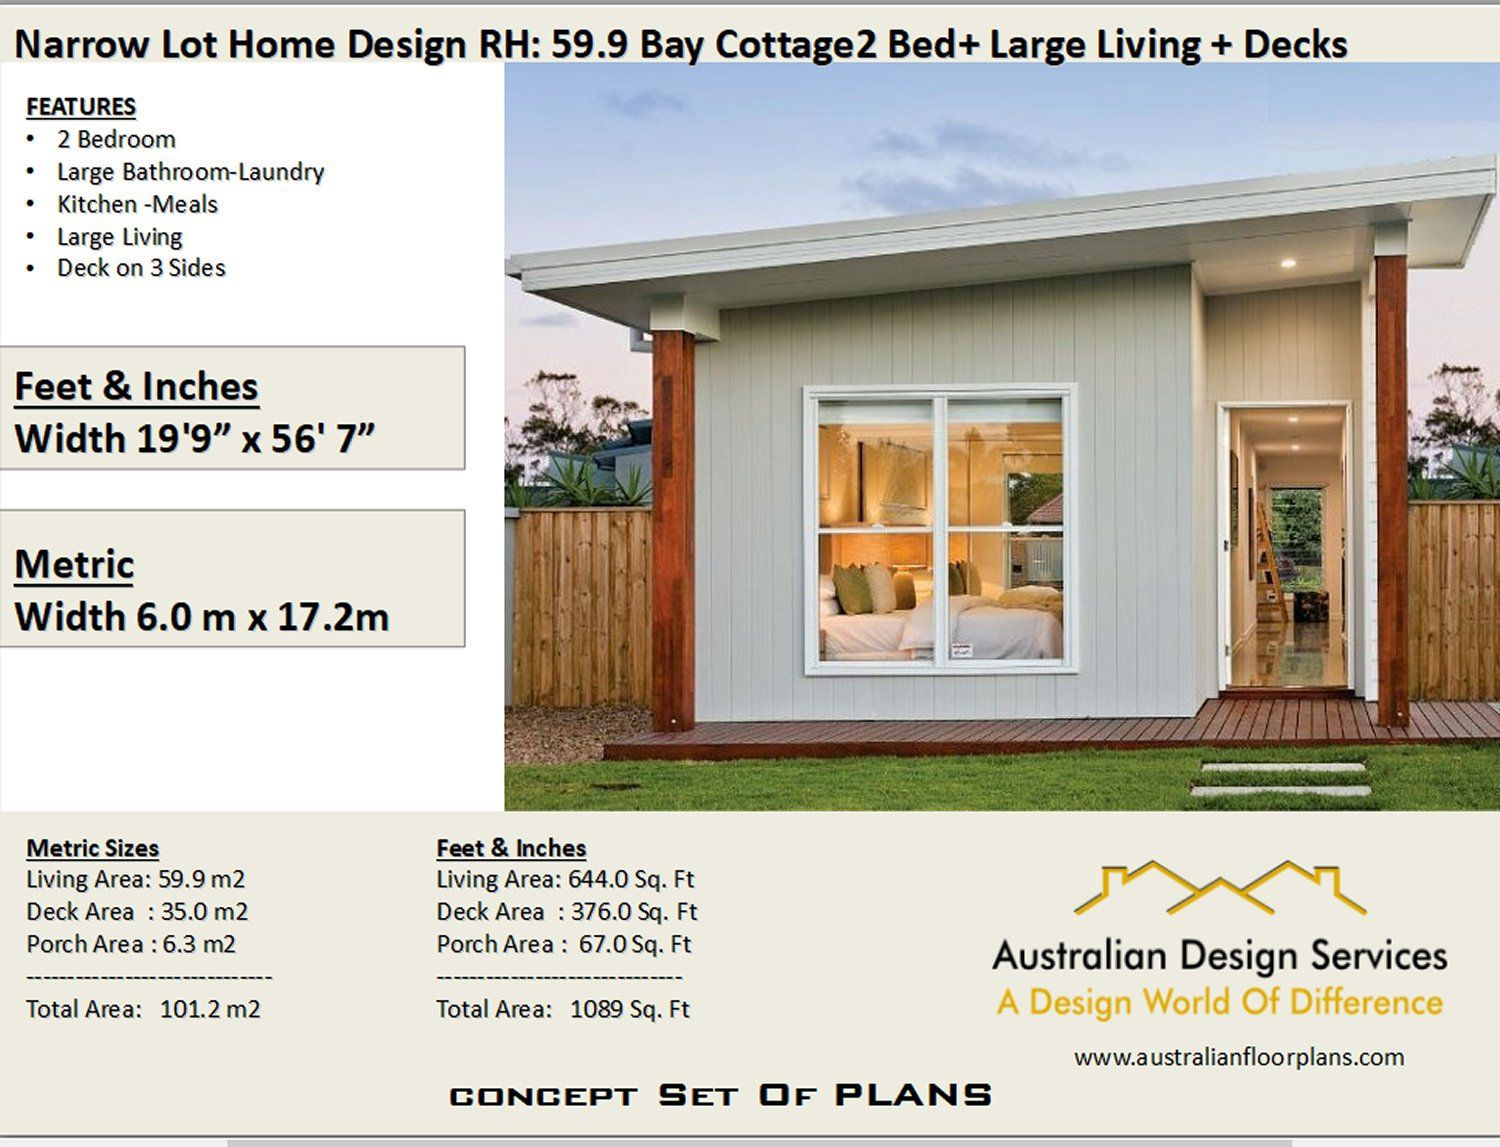 59 9 Bay Cottage 645 Sq Feet Or 59 9 M2 2 Bedroom 2 Bed Granny Flat Concept House Plans For Sale Under 1000 Sq Foot House Plans House Plans For Sale Cottage House Plans House Plans